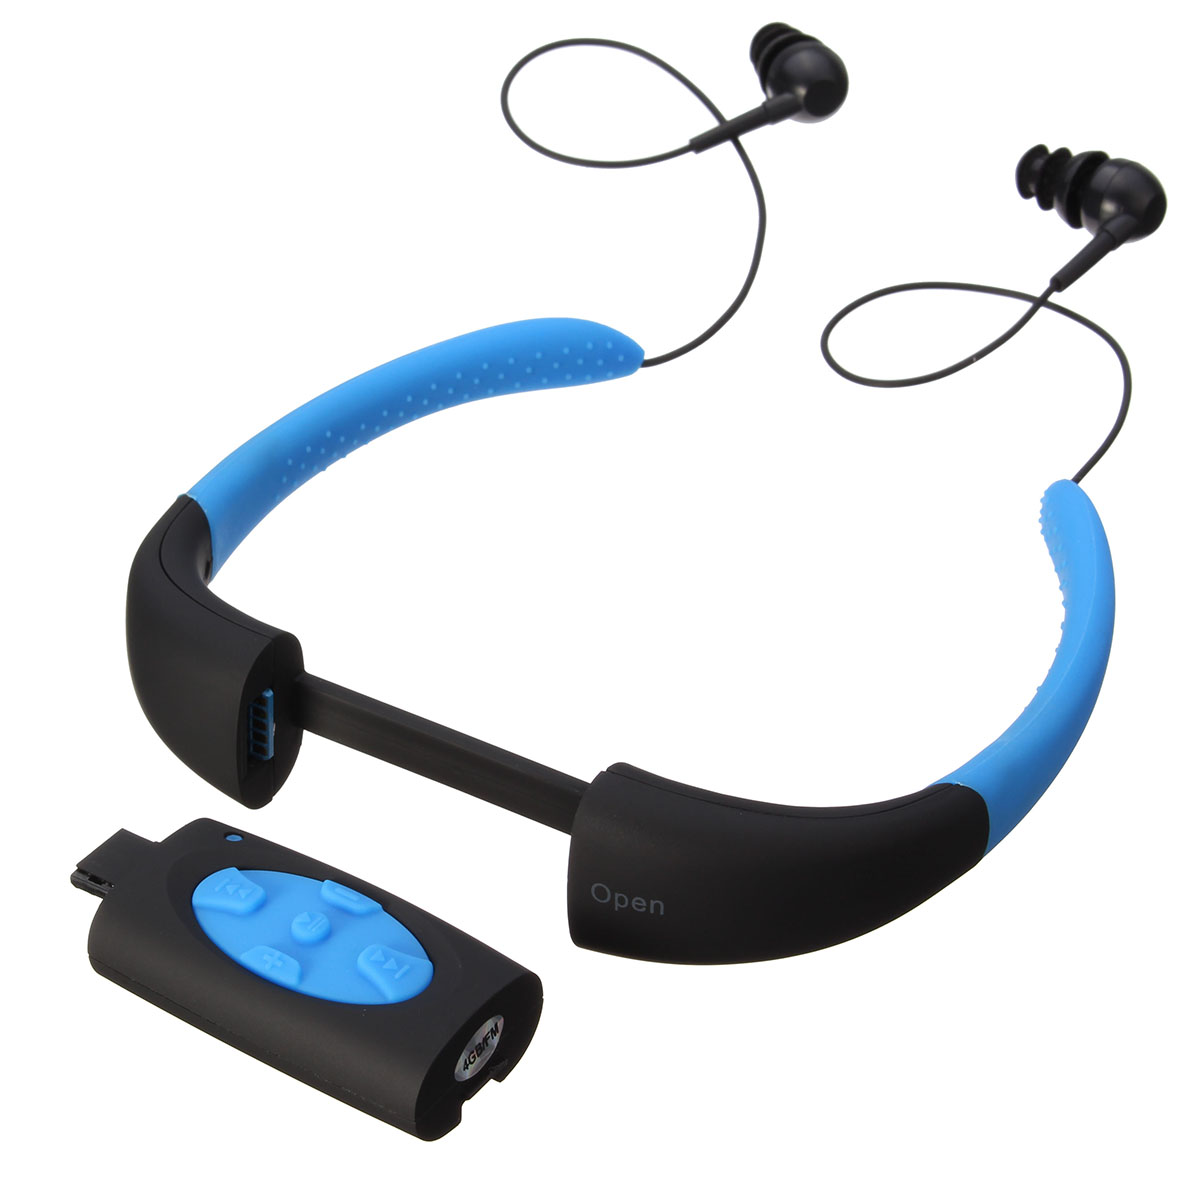 LEORY 4 Colors IPX8 Waterproof MP3 Player Headset Swimming Surfing SPA Diving Sports MP3 Player FM Radio Built in 4GB Memory ks 508 mp3 player stereo headset headphones w tf card slot fm black